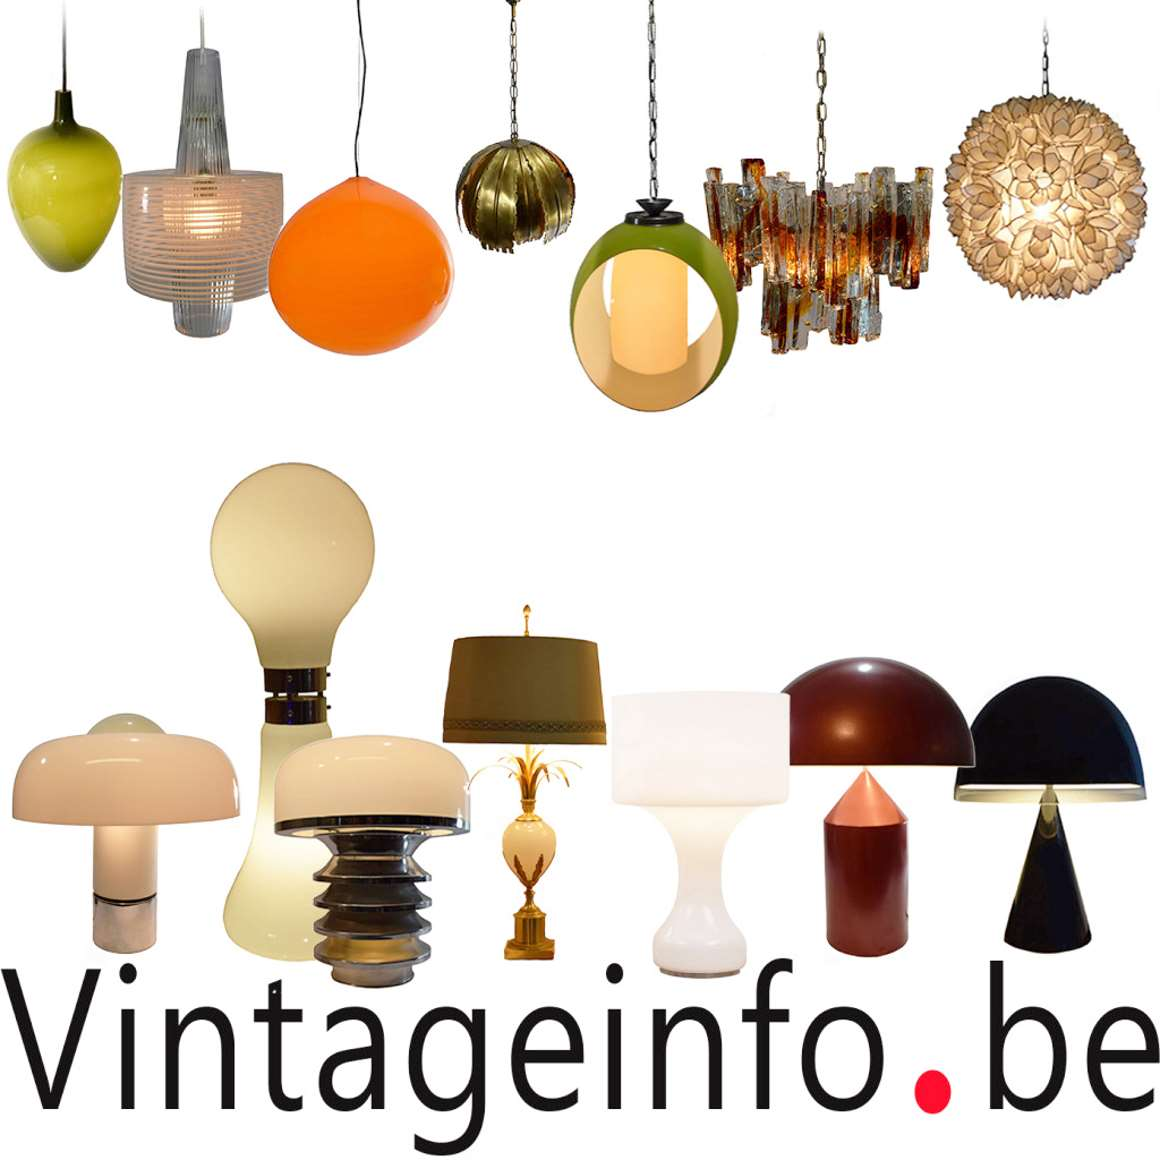 Vintageinfo.be - disclaimer, more info, like to contribute?